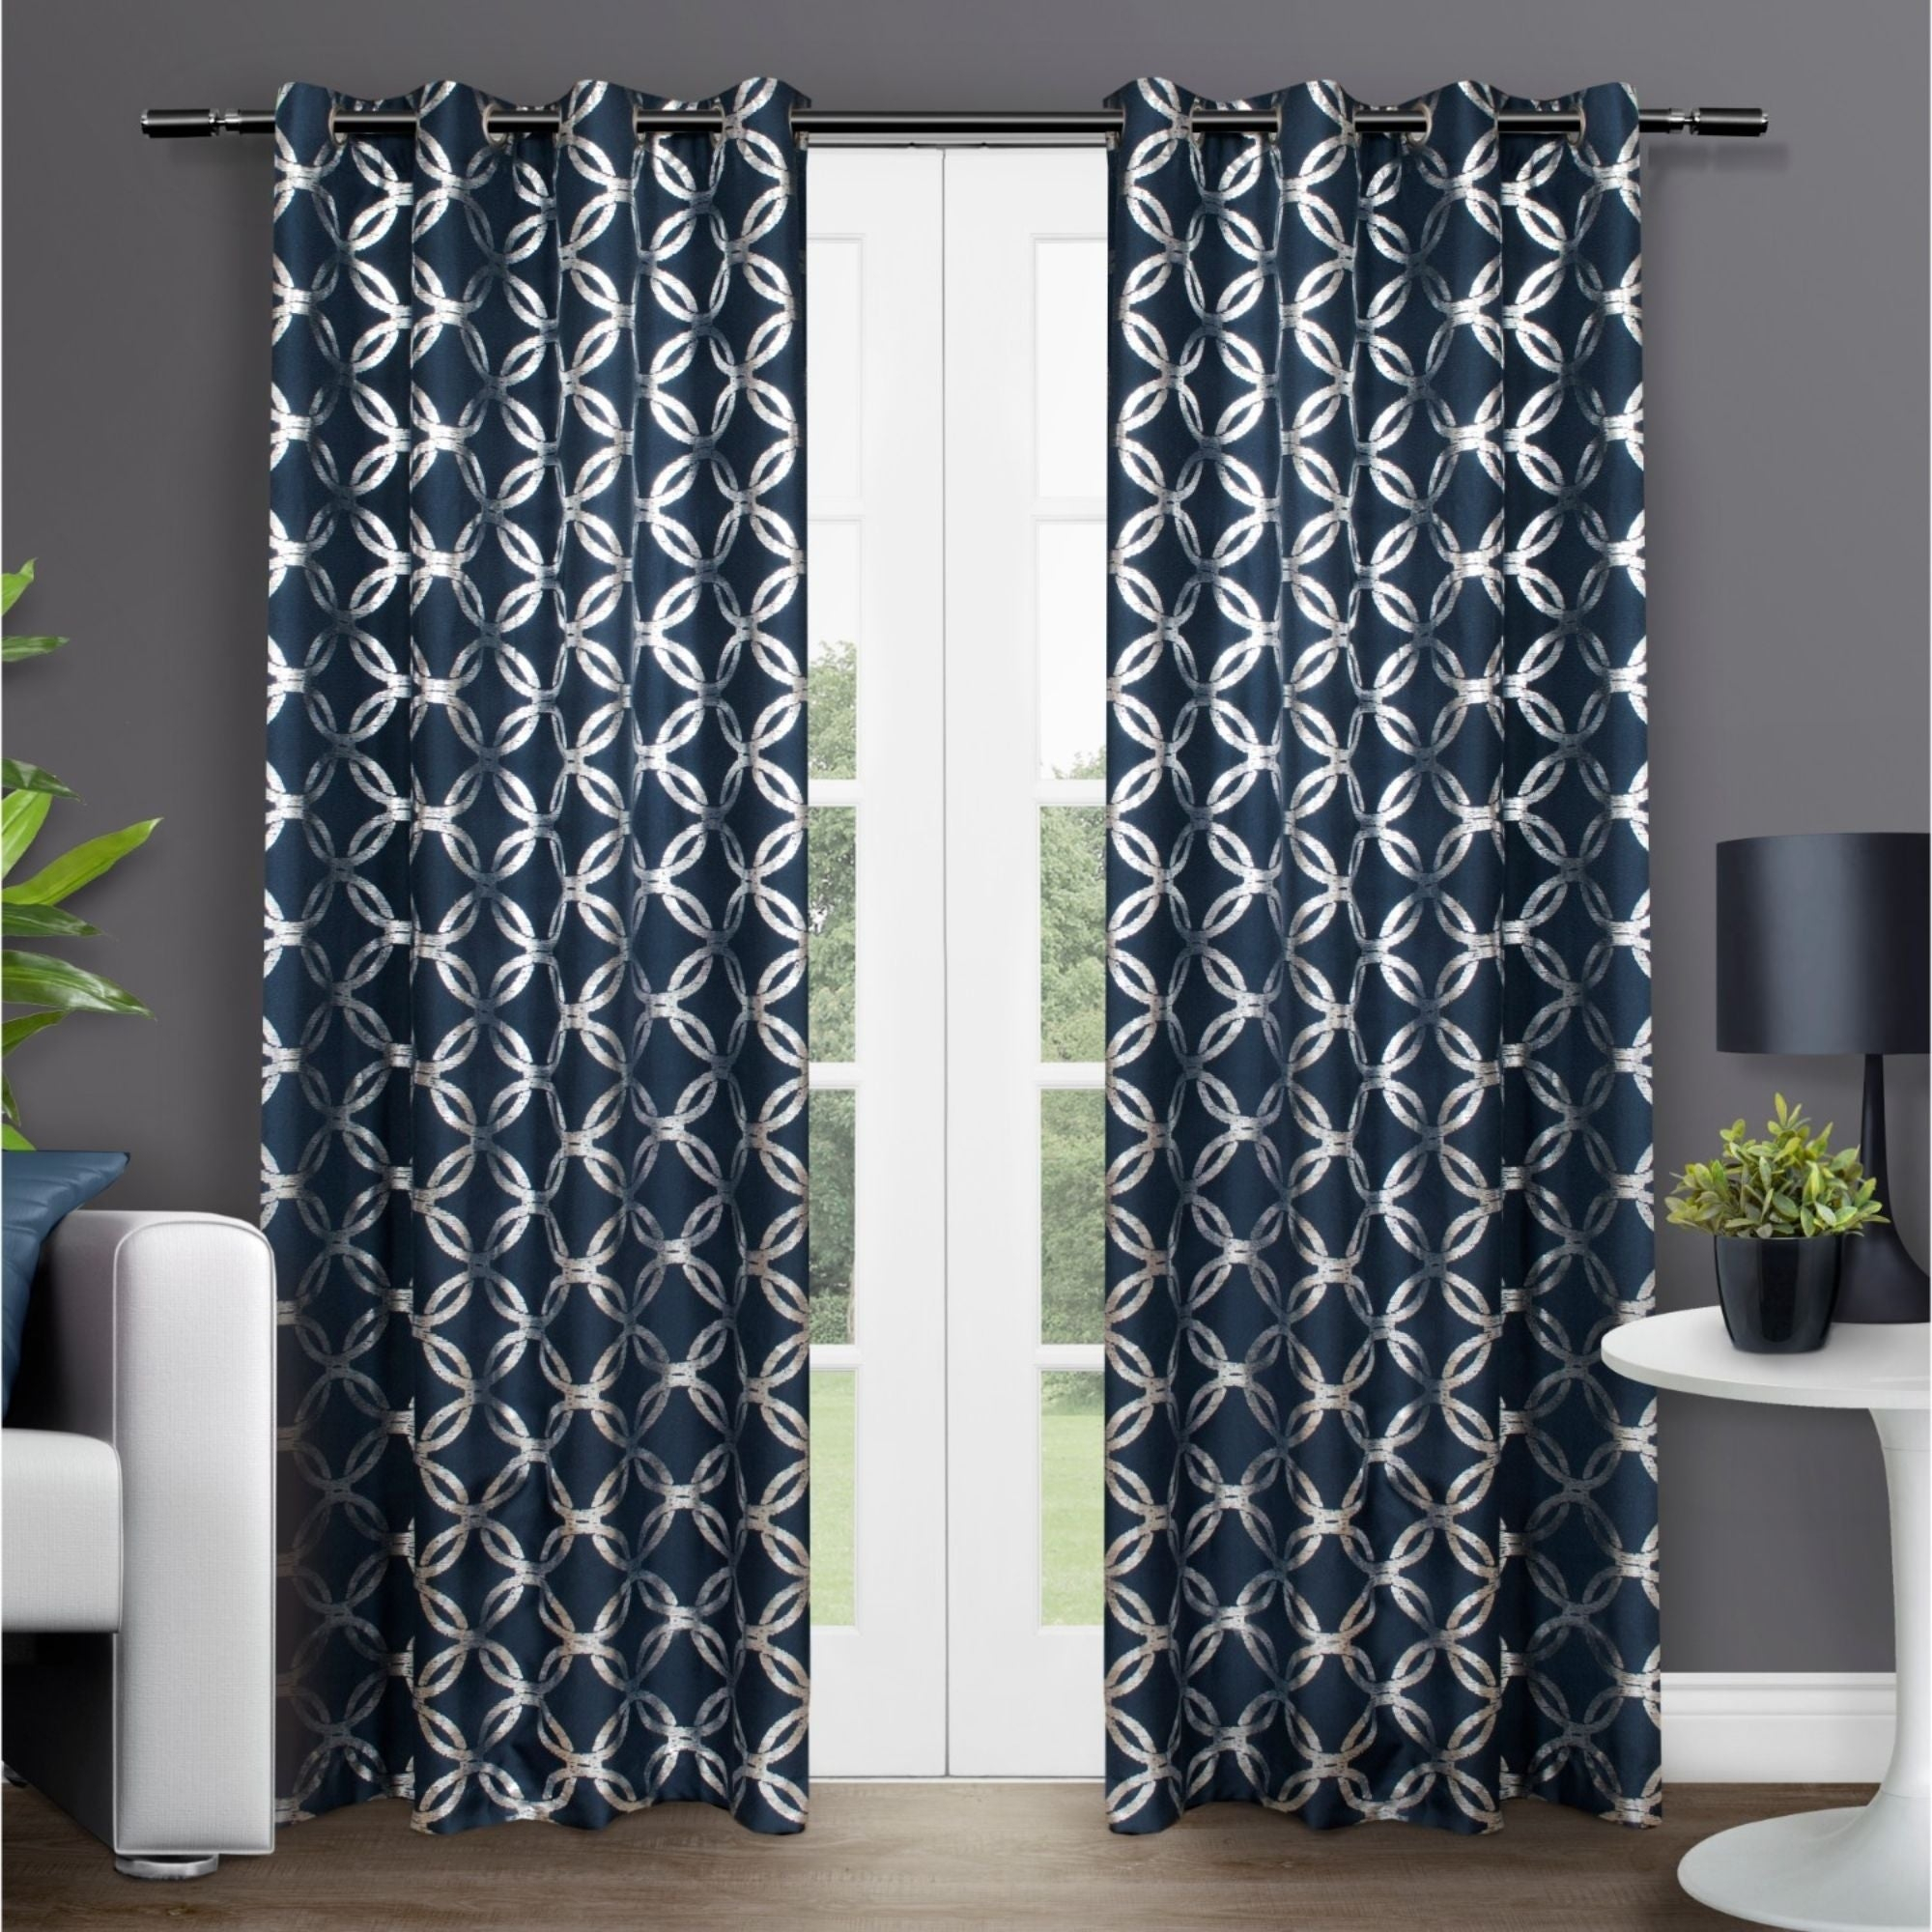 The Curated Nomad Sloat Metallic Geometric Grommet Top Curtain Panel Pair With Regard To The Curated Nomad Duane Jacquard Grommet Top Curtain Panel Pairs (View 11 of 30)